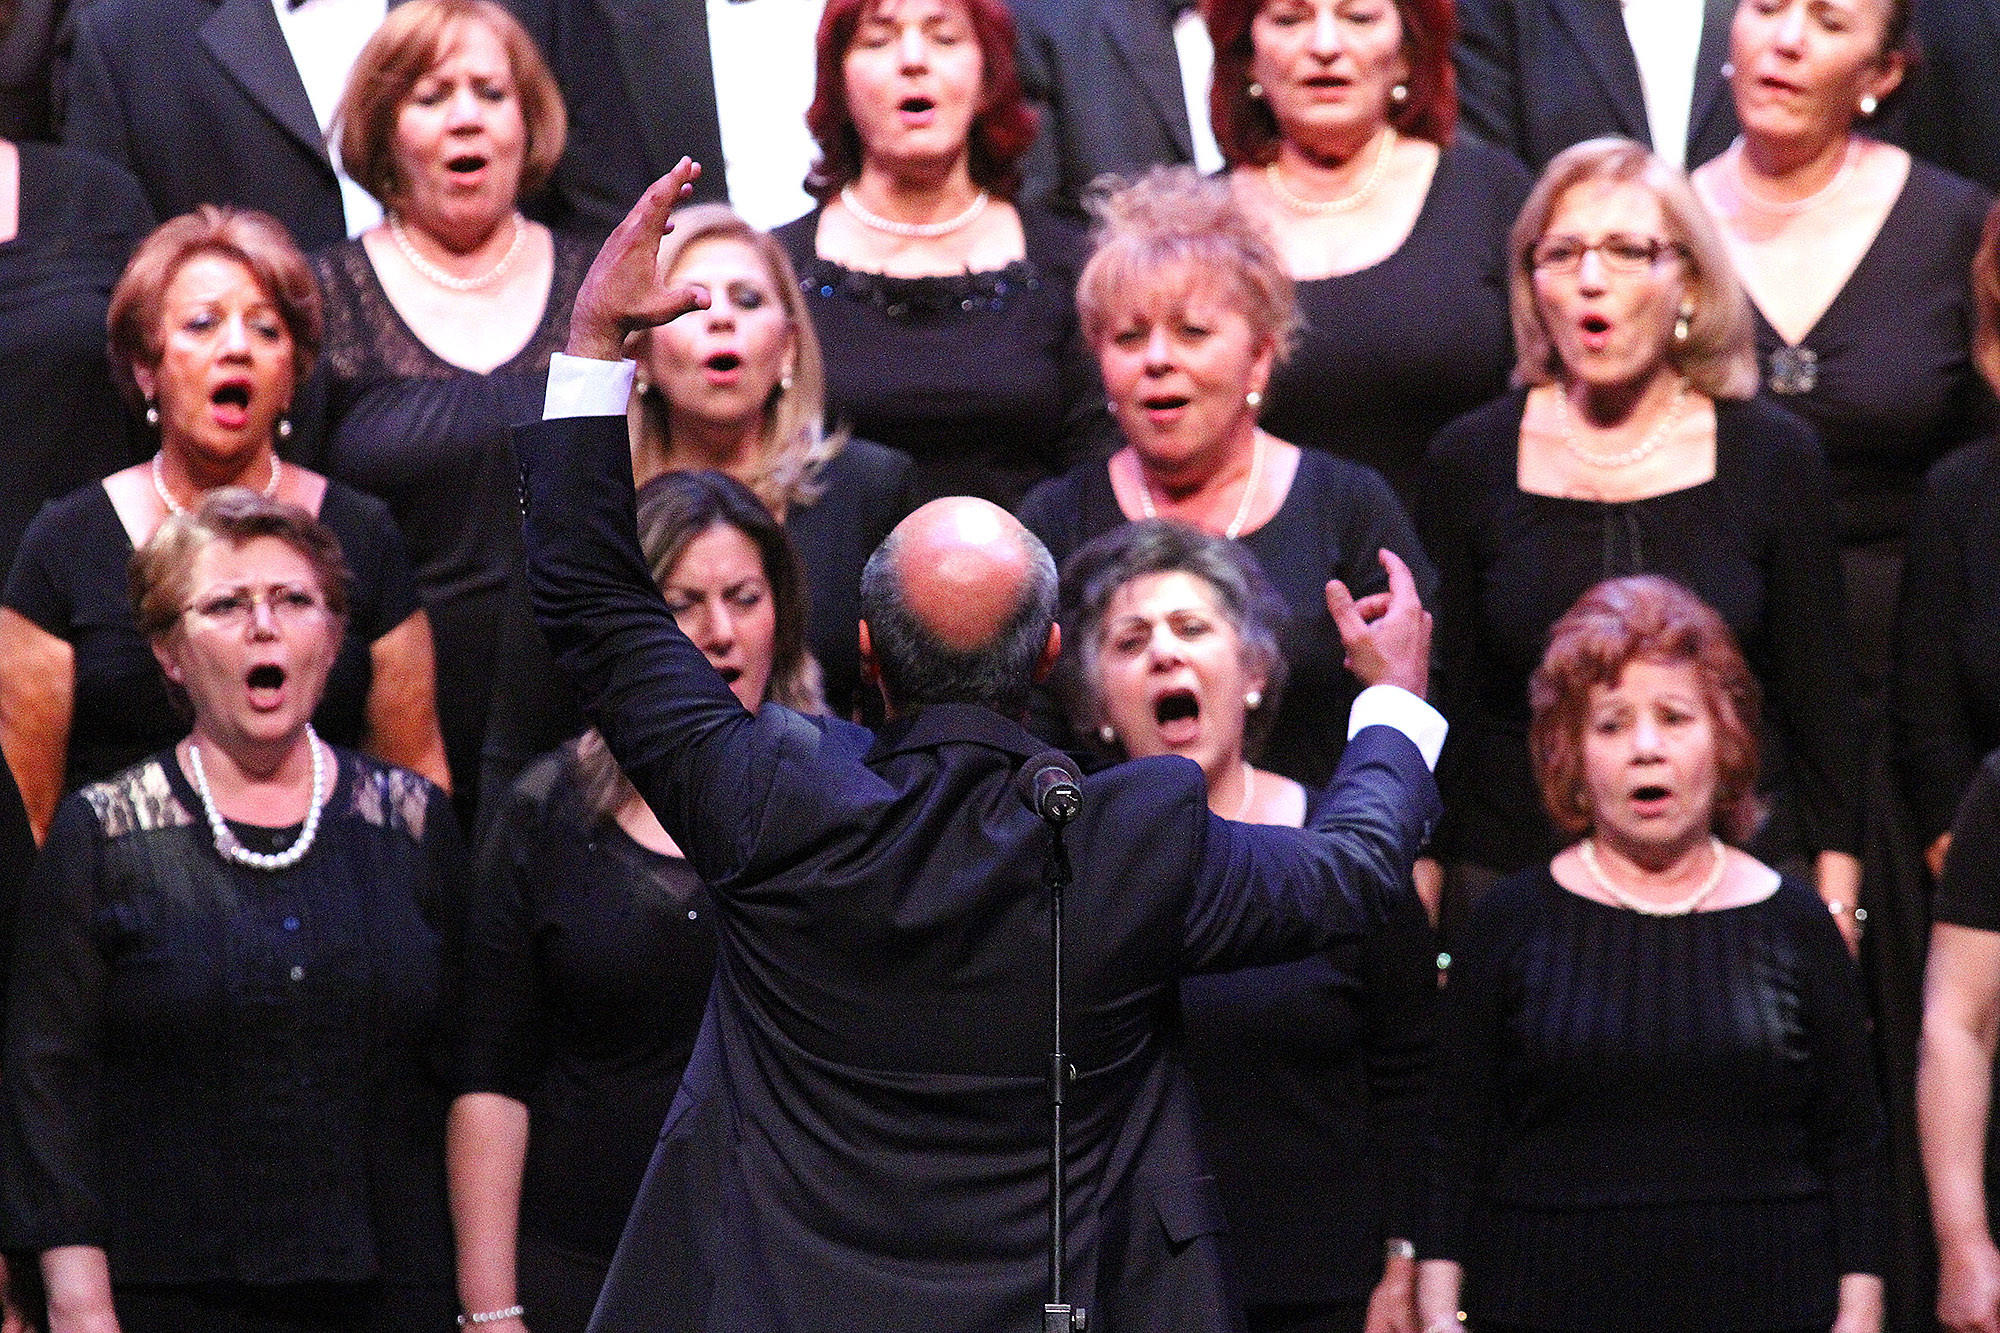 Director Michael Avedissian brings out the power of the voices of the Armenian Society of Los Angeles Choir at the City of Glendale's 13th Annual Commemoration of the Armenian Genocide at the Alex Theatre in Glendale on Thursday, April 24, 2014.